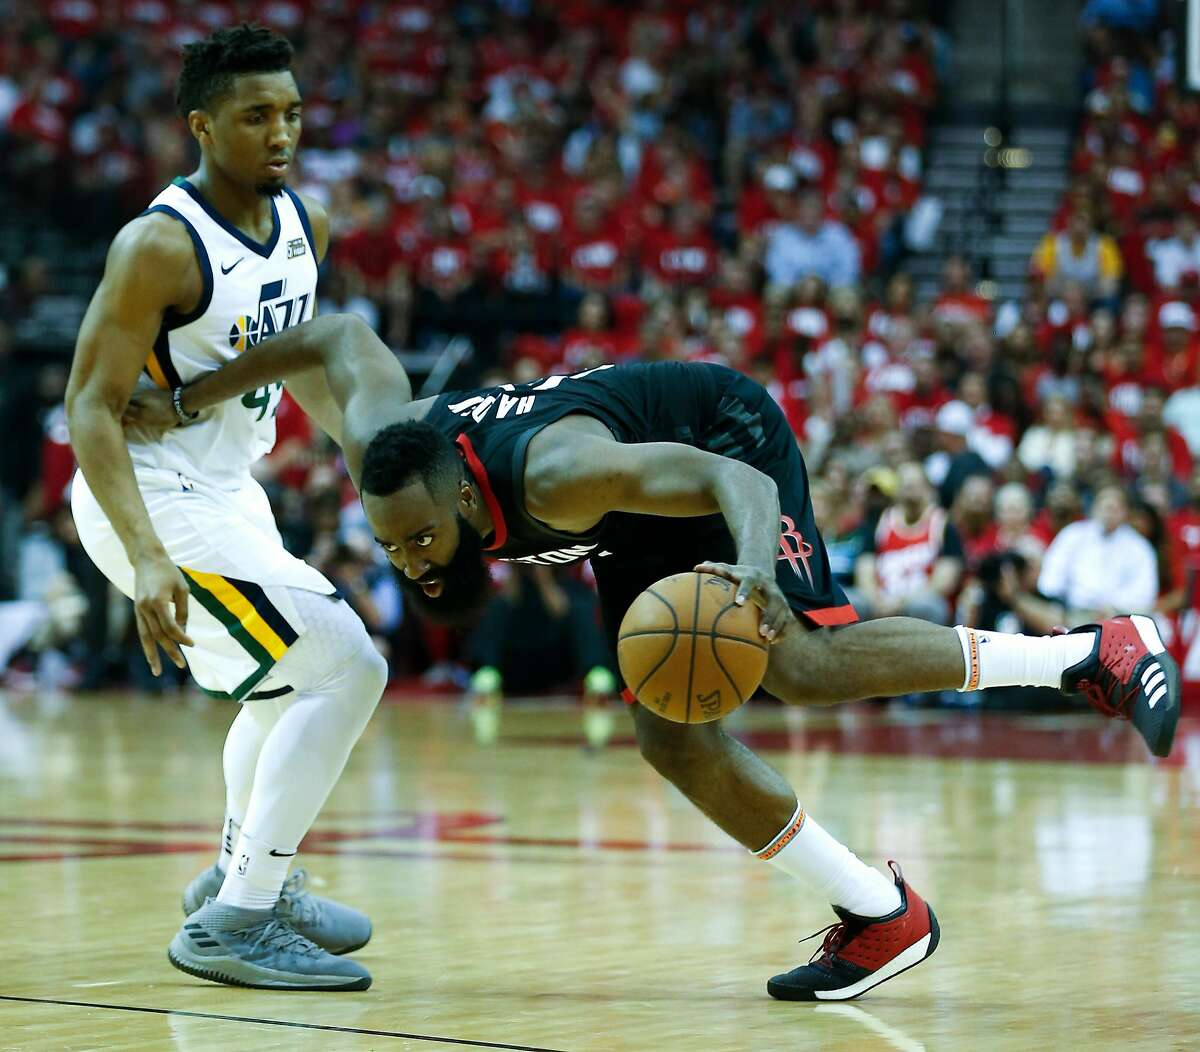 Houston Rockets guard James Harden (13) is tripped up as he dribbles past Utah Jazz guard Donovan Mitchell (45) during the second half in Game 2 of an NBA basketball second-round playoff series at Toyota Center on Wednesday, May 2, 2018, in Houston. ( Brett Coomer / Houston Chronicle )